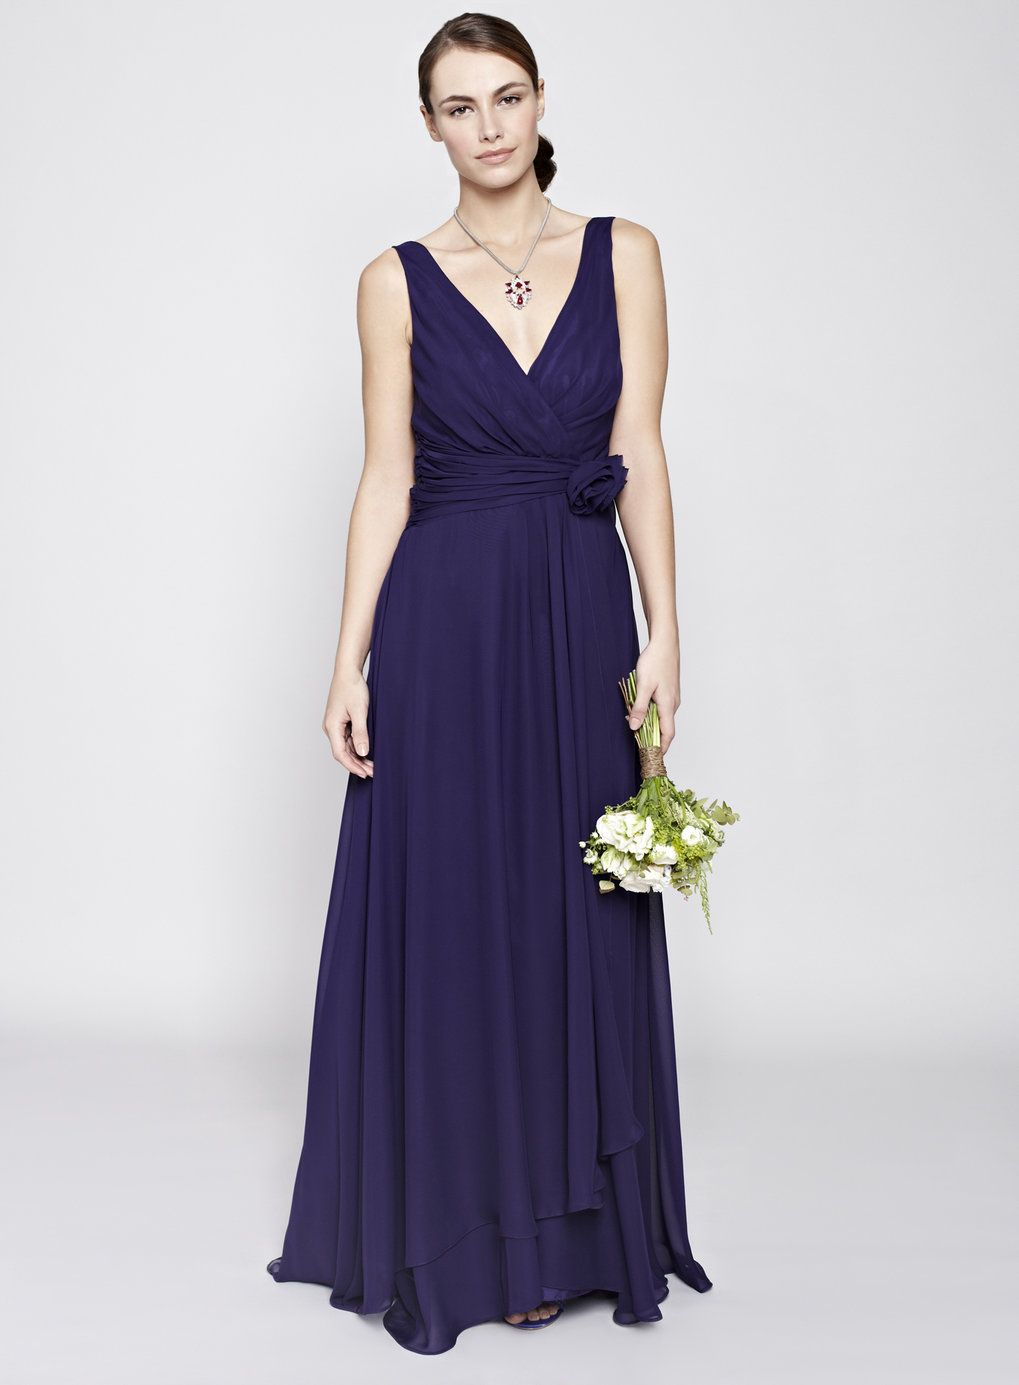 Beautiful purple bridesmaid dress from bhs thoughts xxx beautiful purple bridesmaid dress from bhs thoughts xxx ombrellifo Choice Image